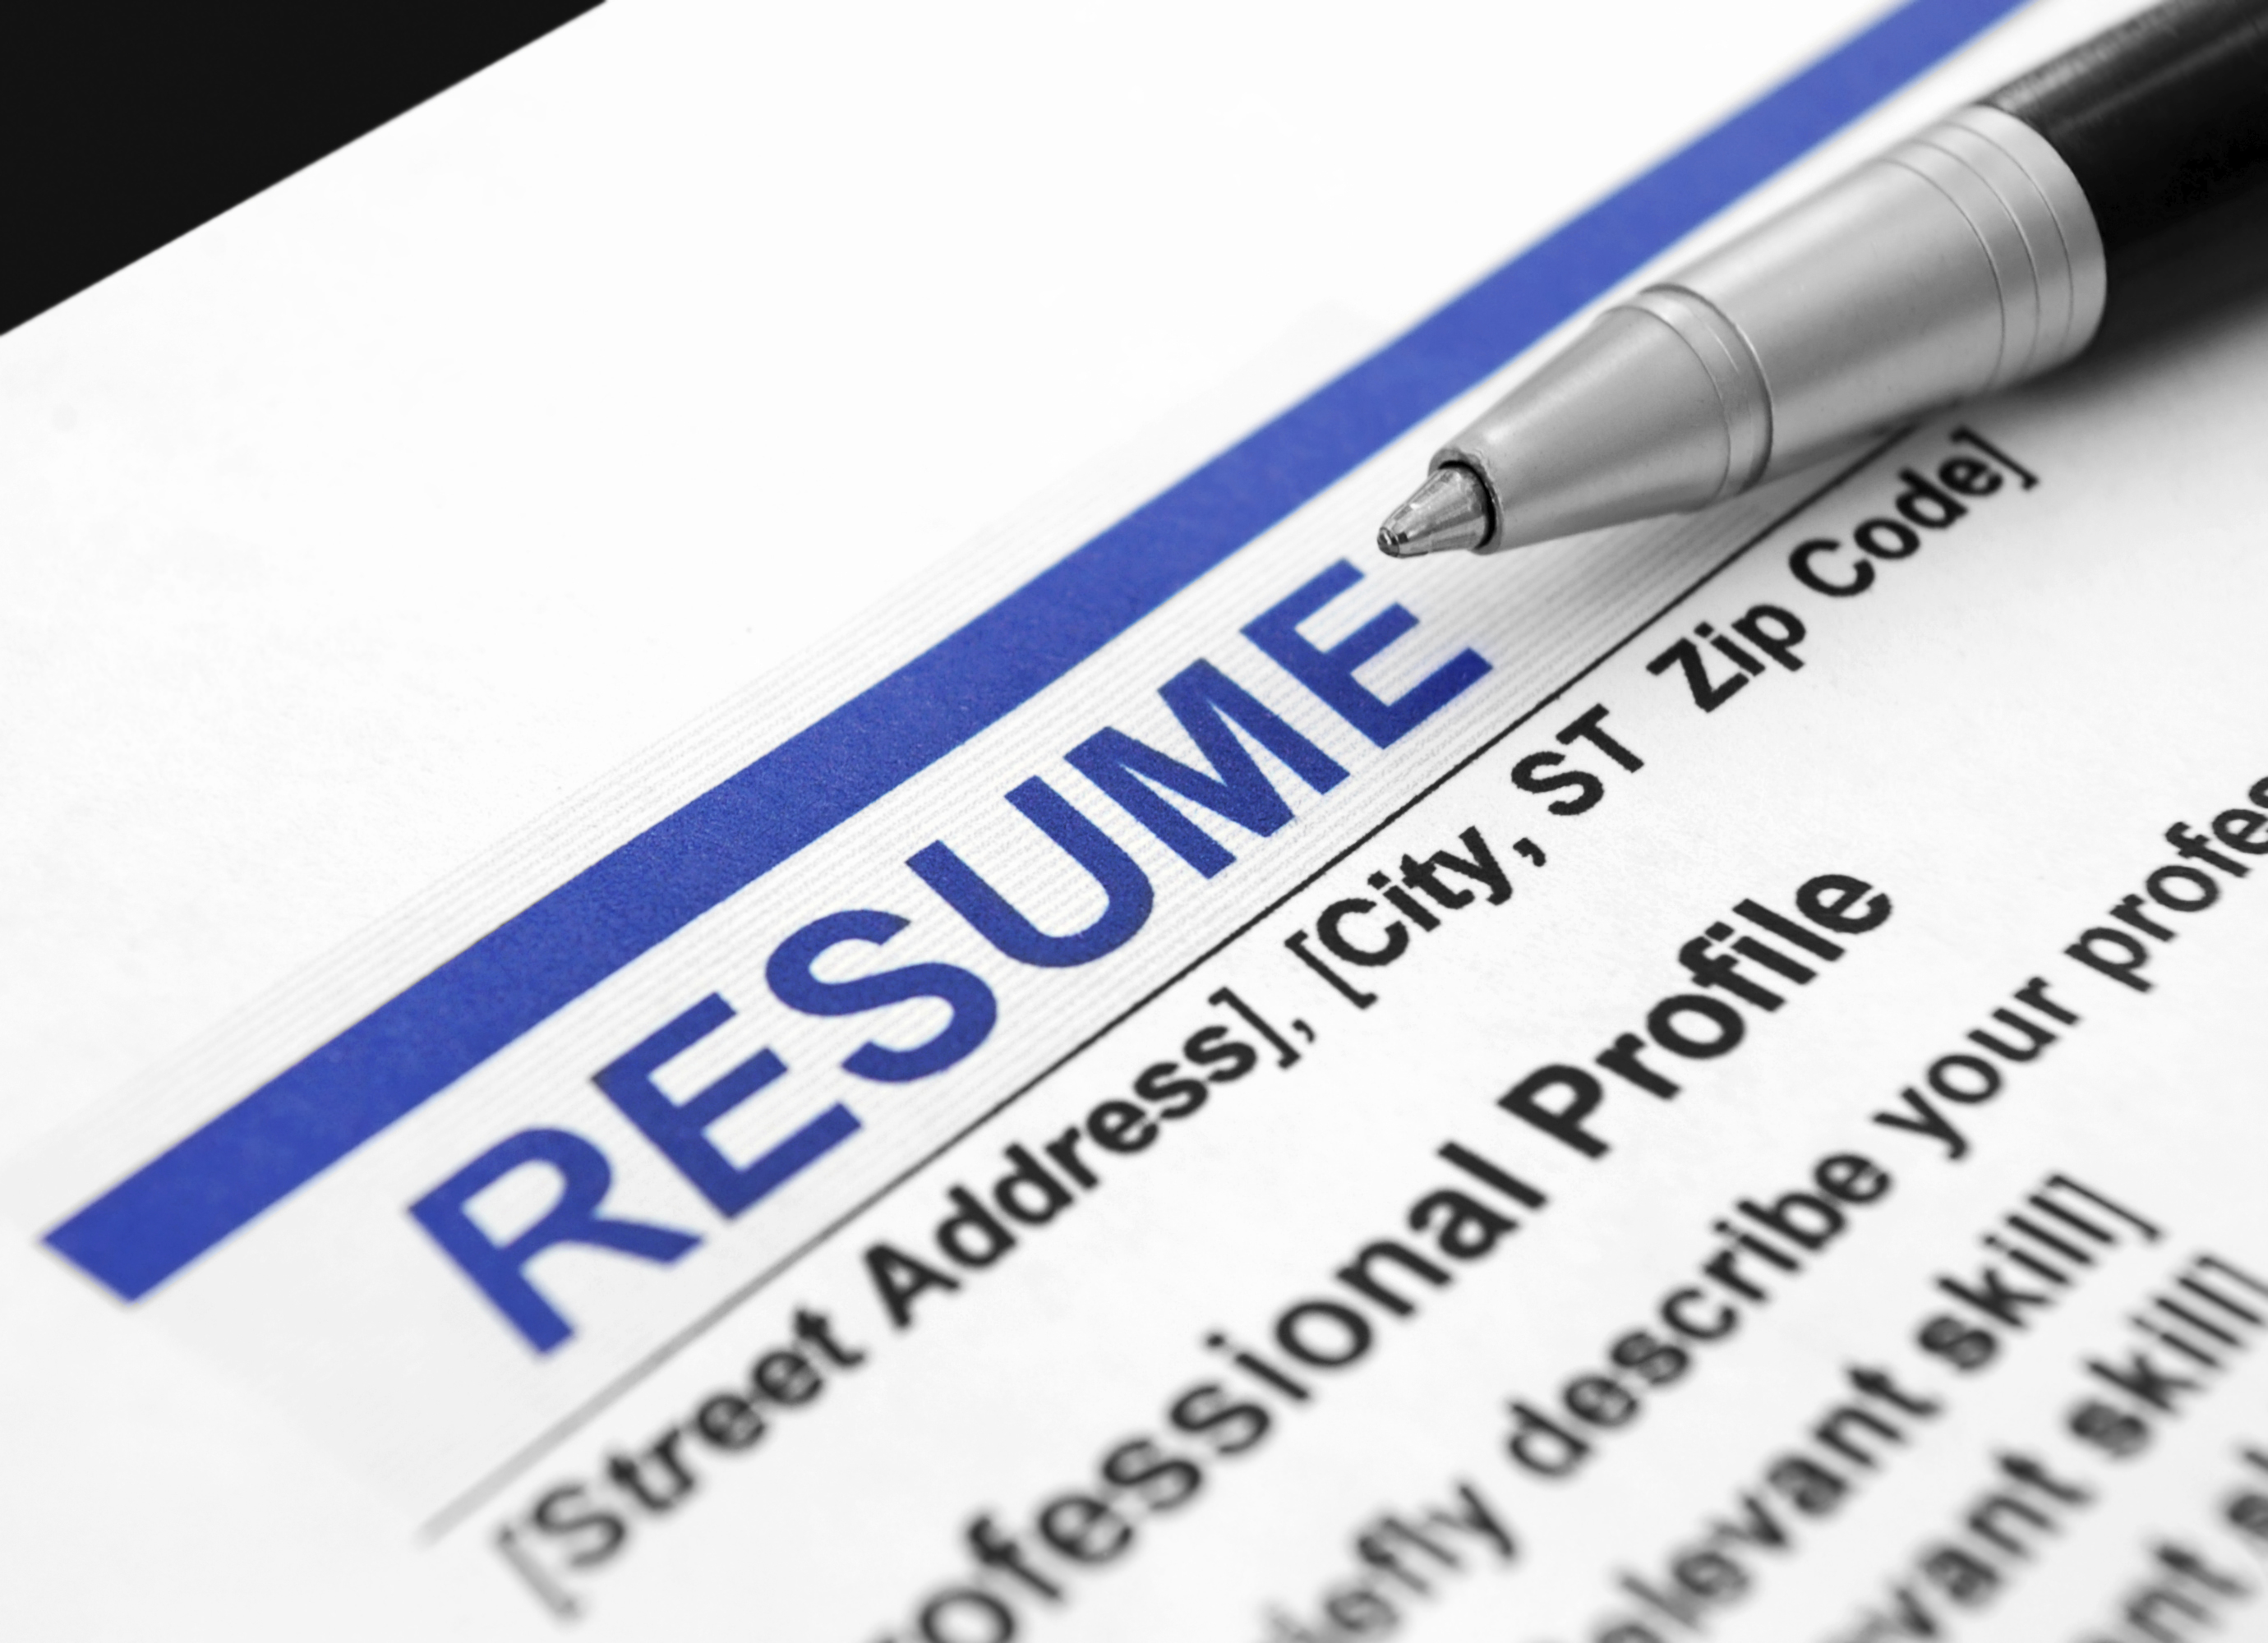 7 title tagline strategies in executive resumes